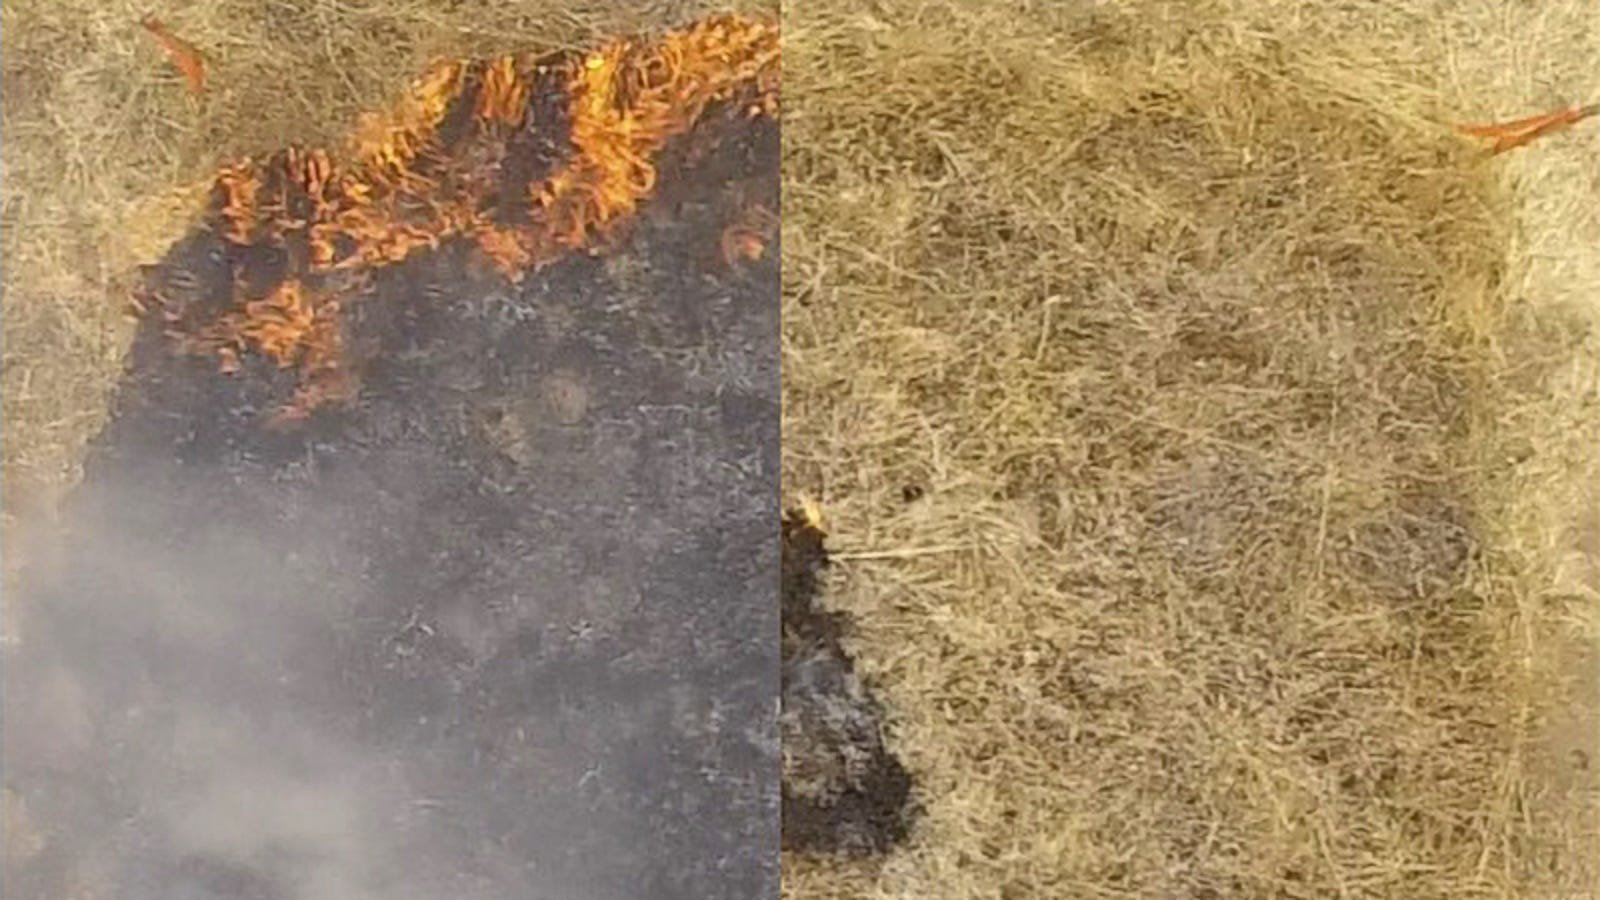 A New Spray-On Gel Could Help Stop Wildfires Before They Start, Researchers Say